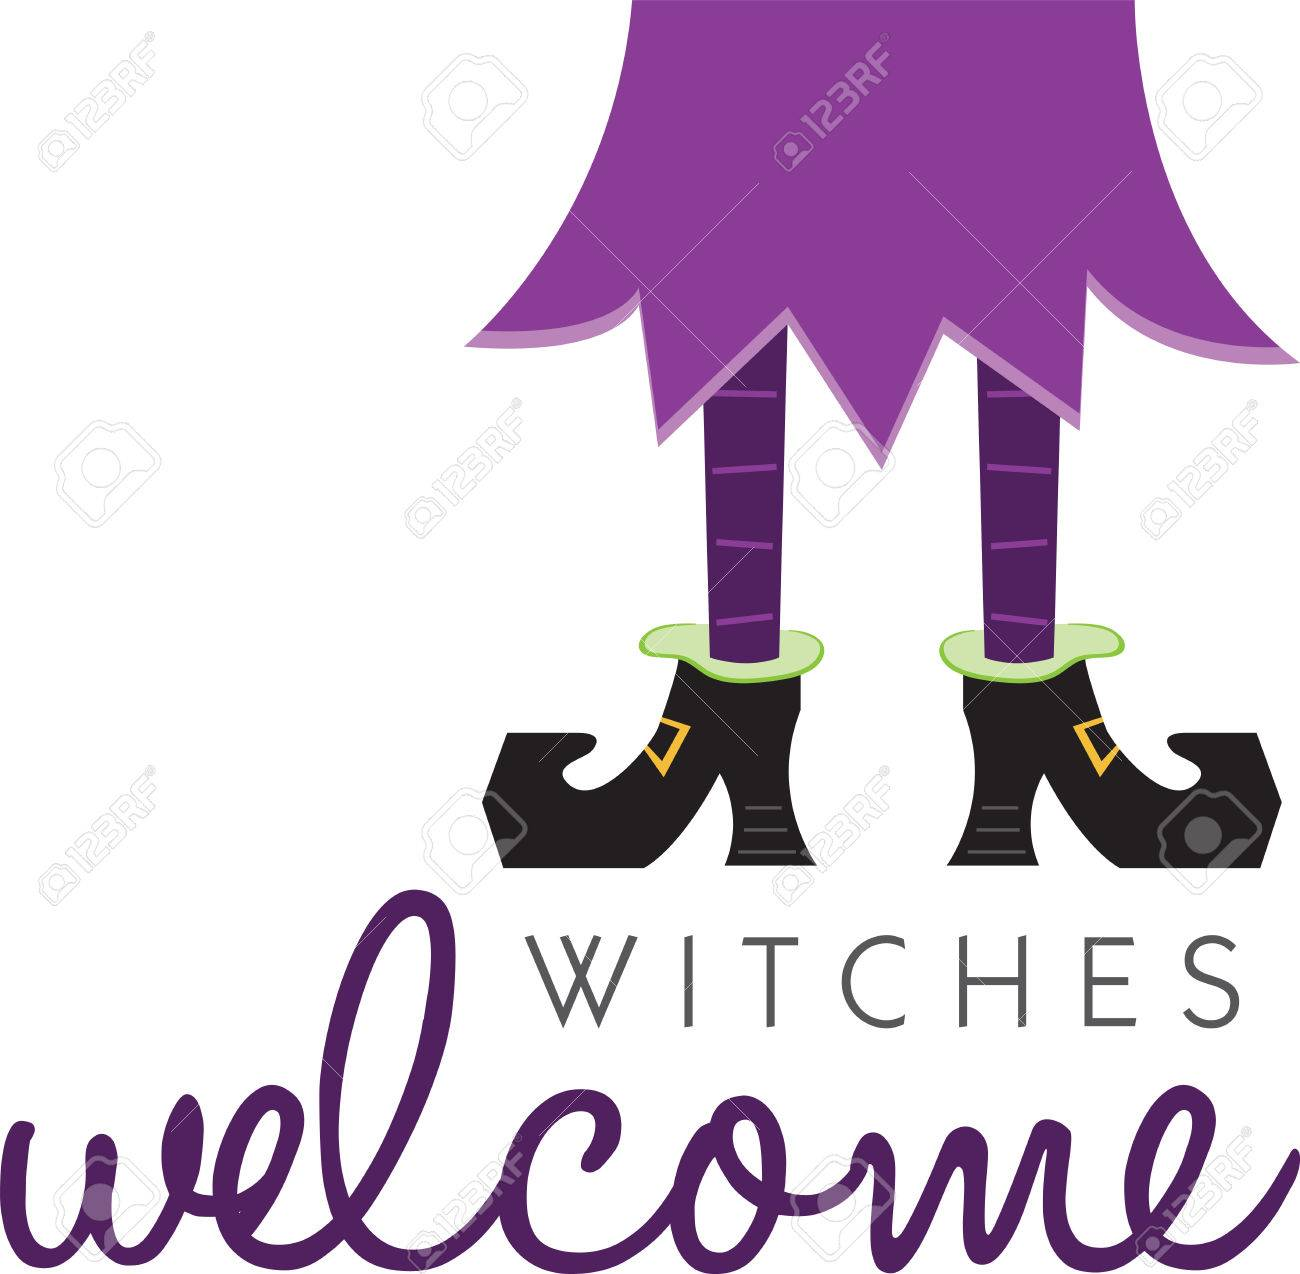 Halloween decoration clipart - Witch Legs Will Make A Great Halloween Decoration Stock Vector 41367454